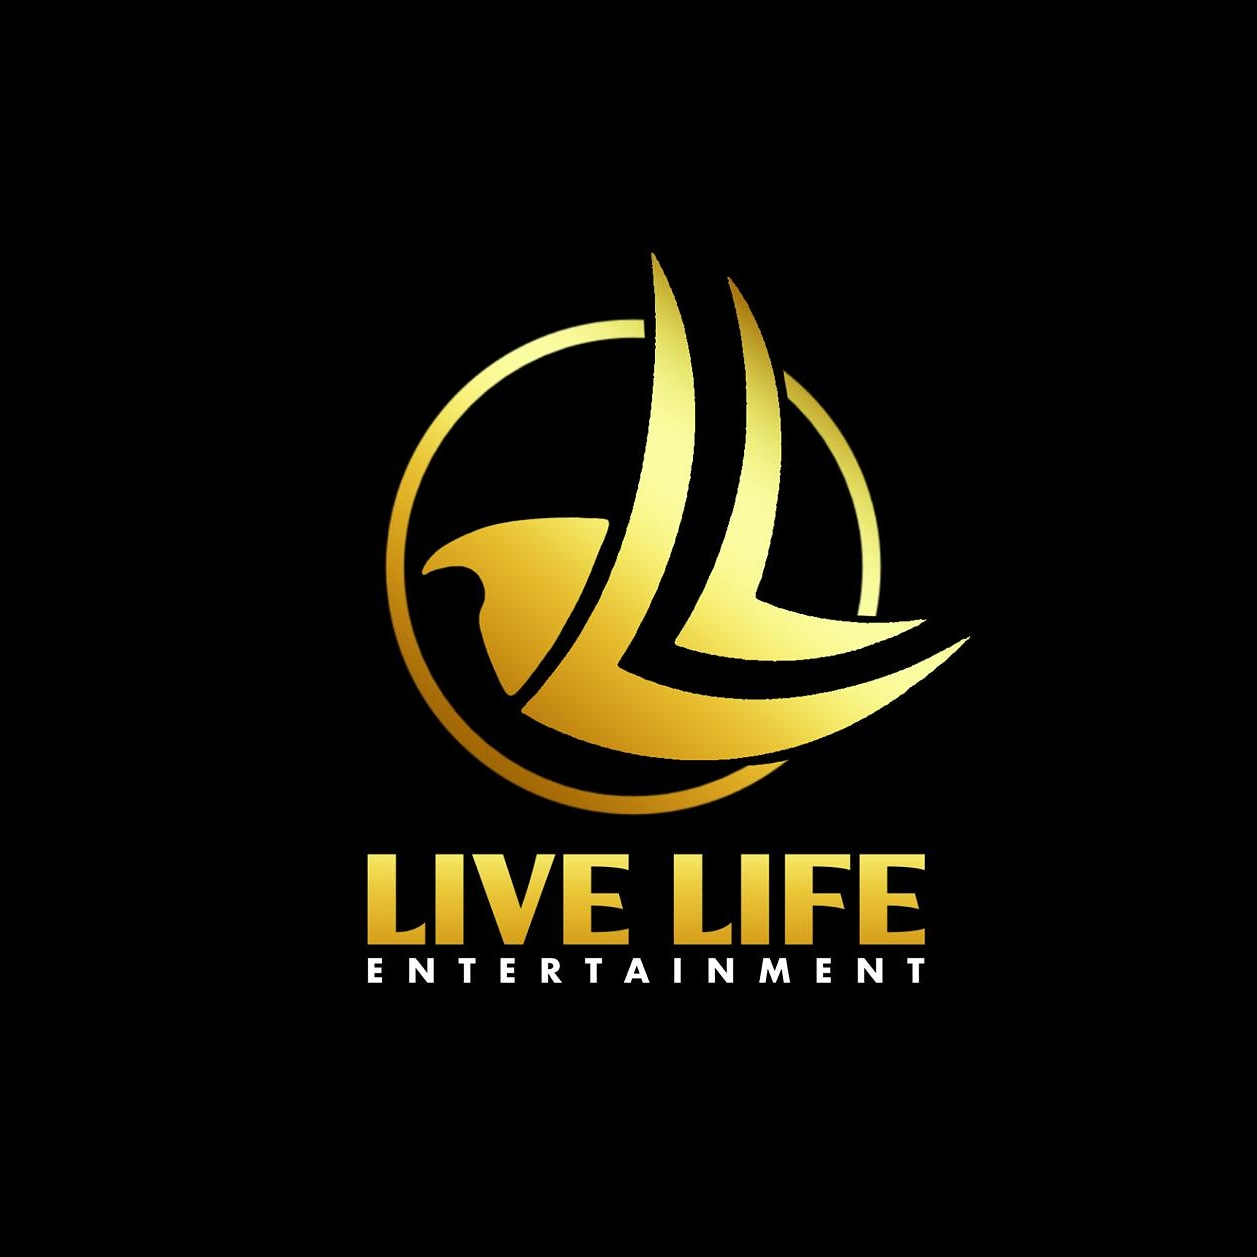 LIVE LIFE ENTERTAINMENT